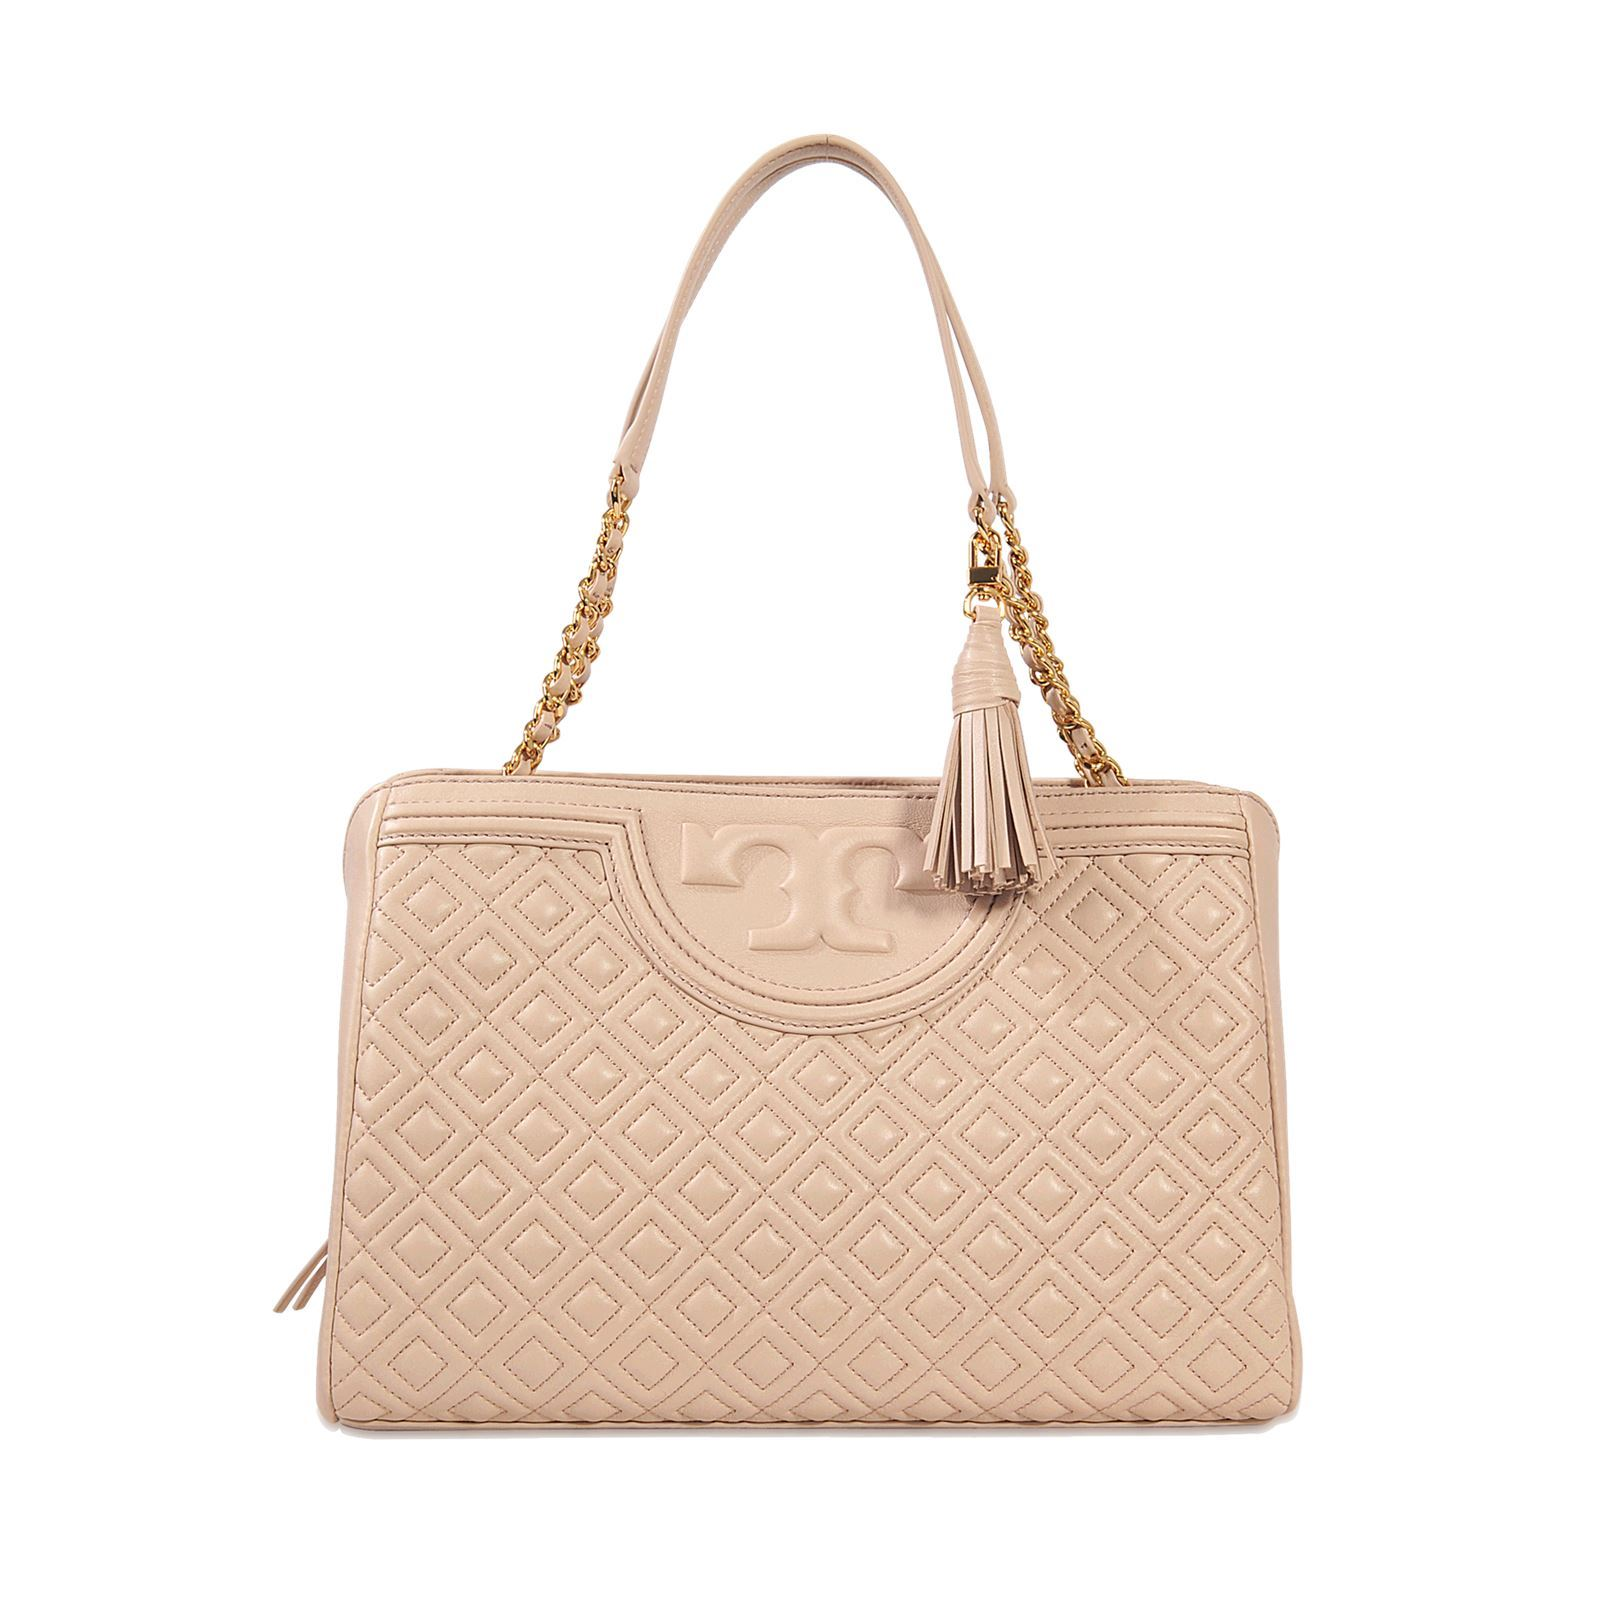 Tory Burch Fleming - Sac cabas en cuir - rose   BrandAlley cced6e705094